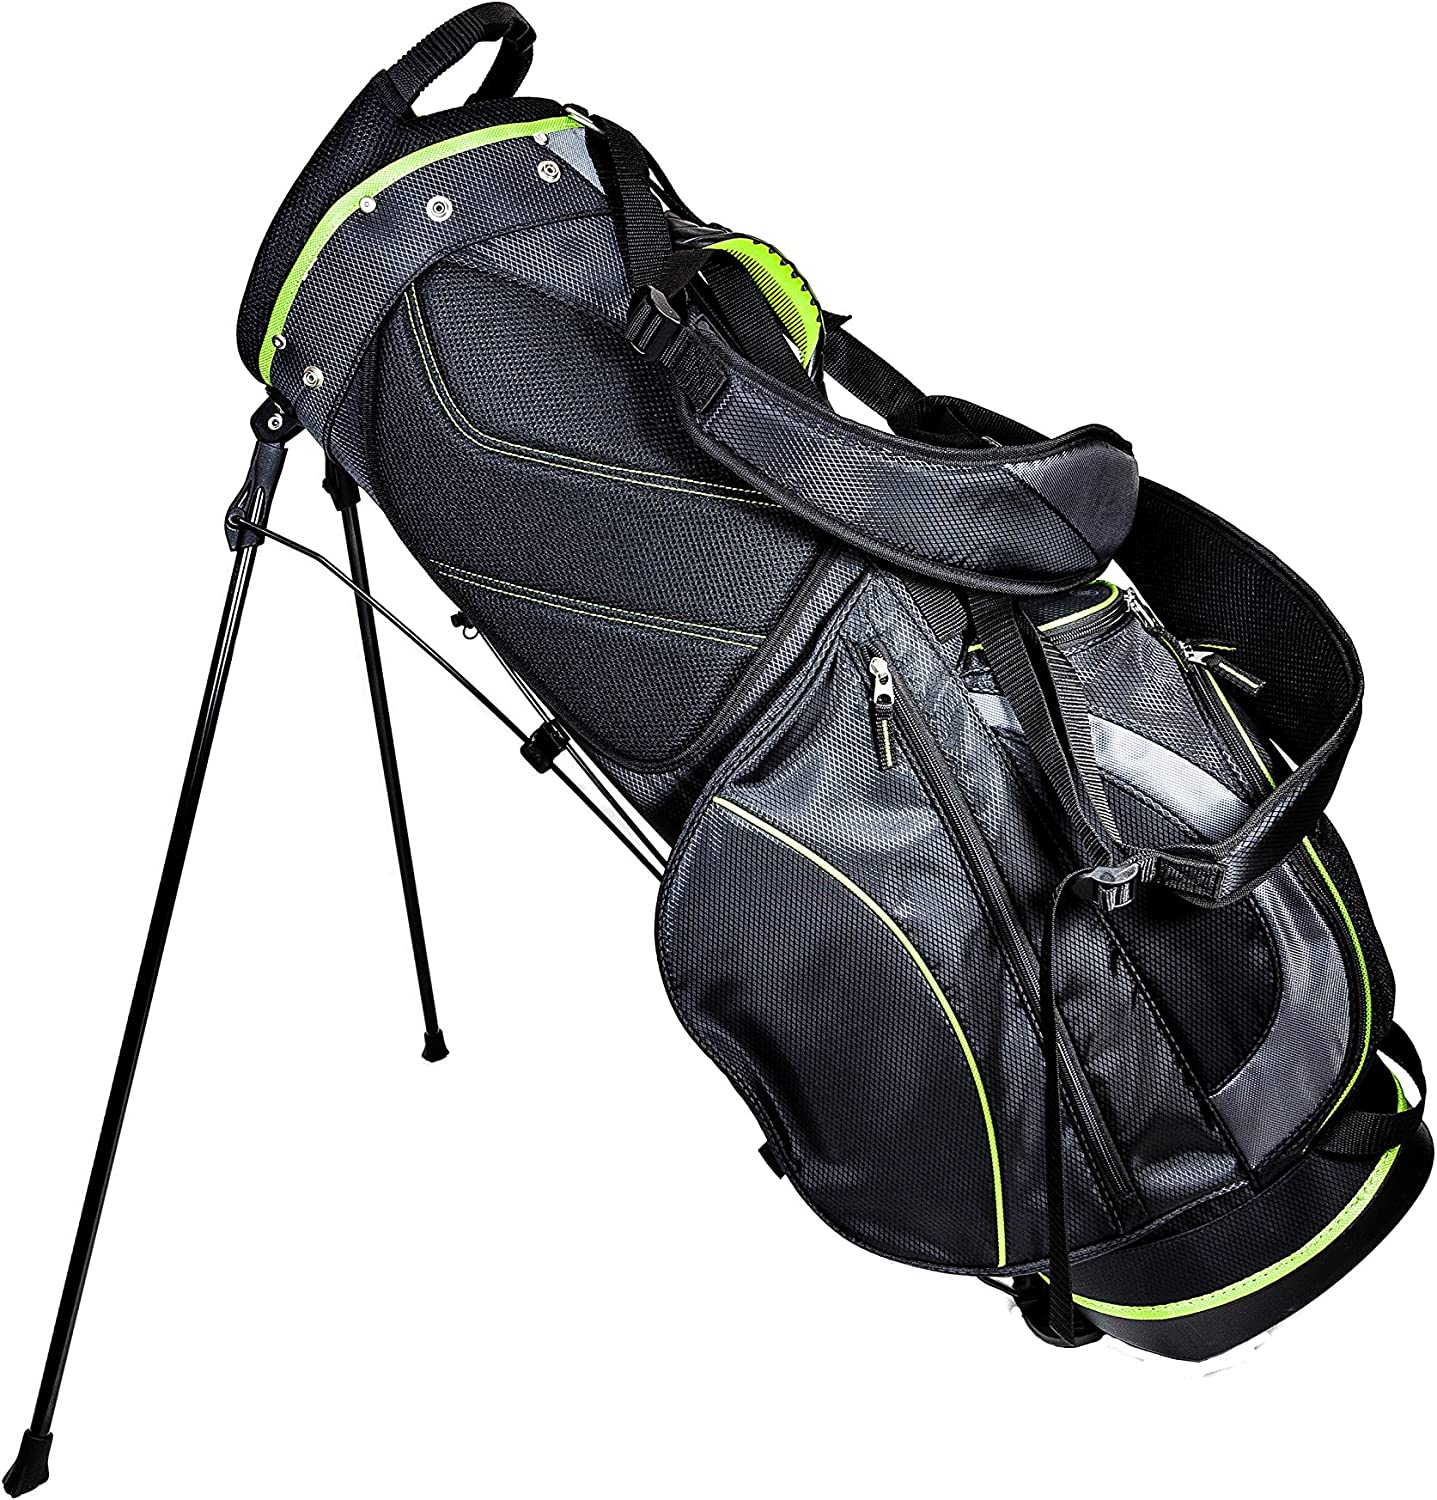 Club Champ Deluxe Stand Golf Bag, Black/Green : Sports & Outdoors